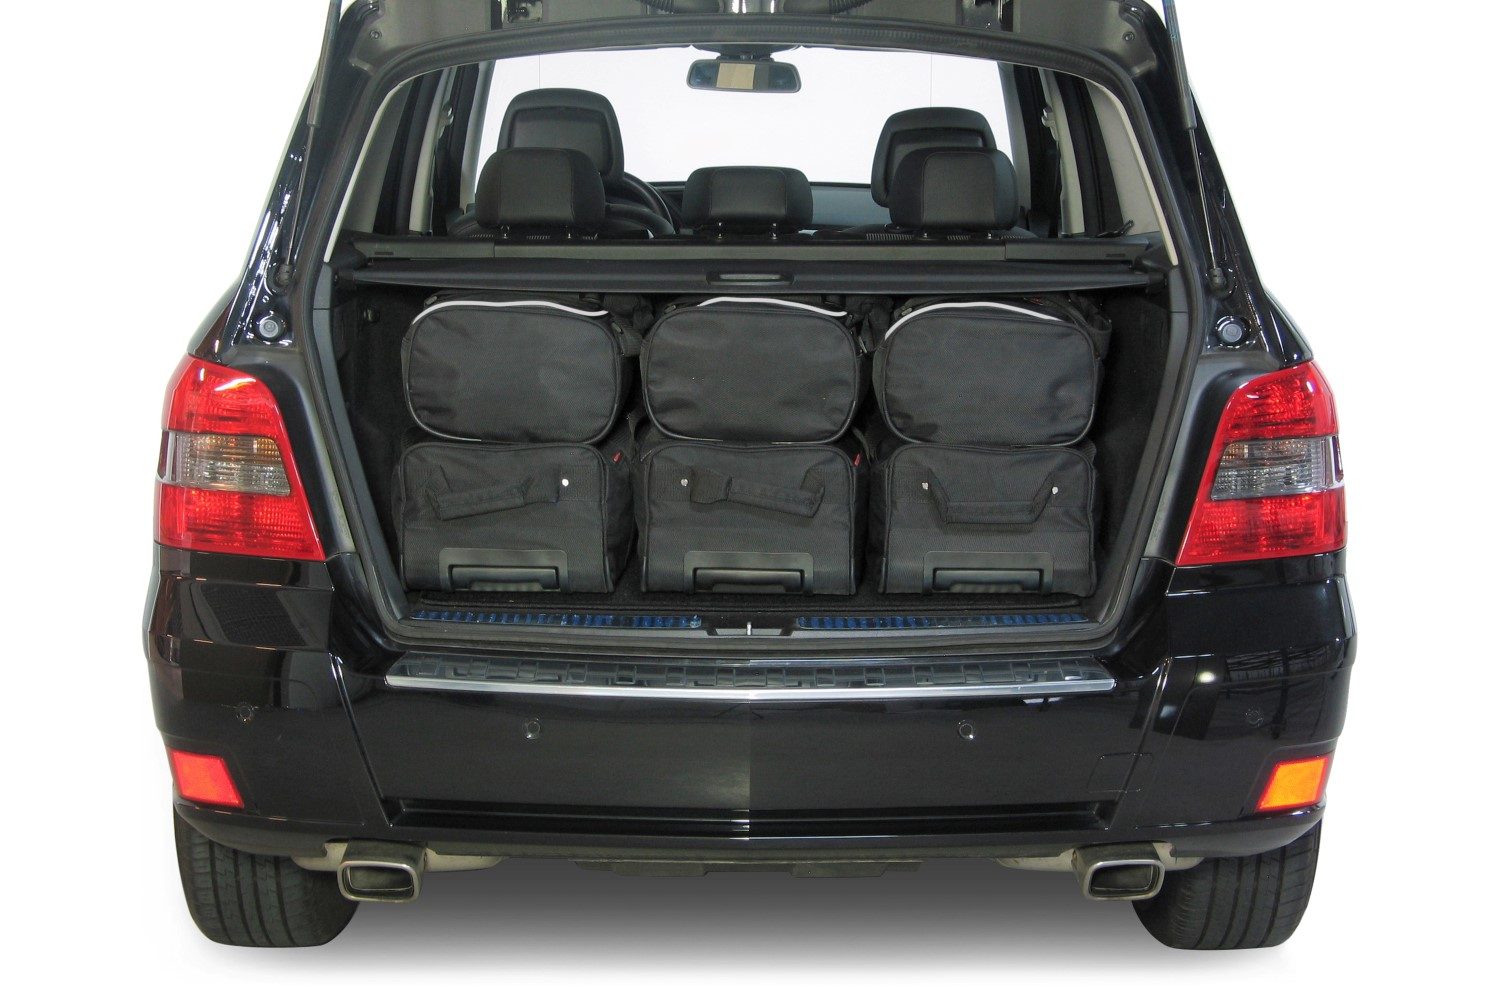 mercedes glk x204 sacs de voyage pour voiture car. Black Bedroom Furniture Sets. Home Design Ideas